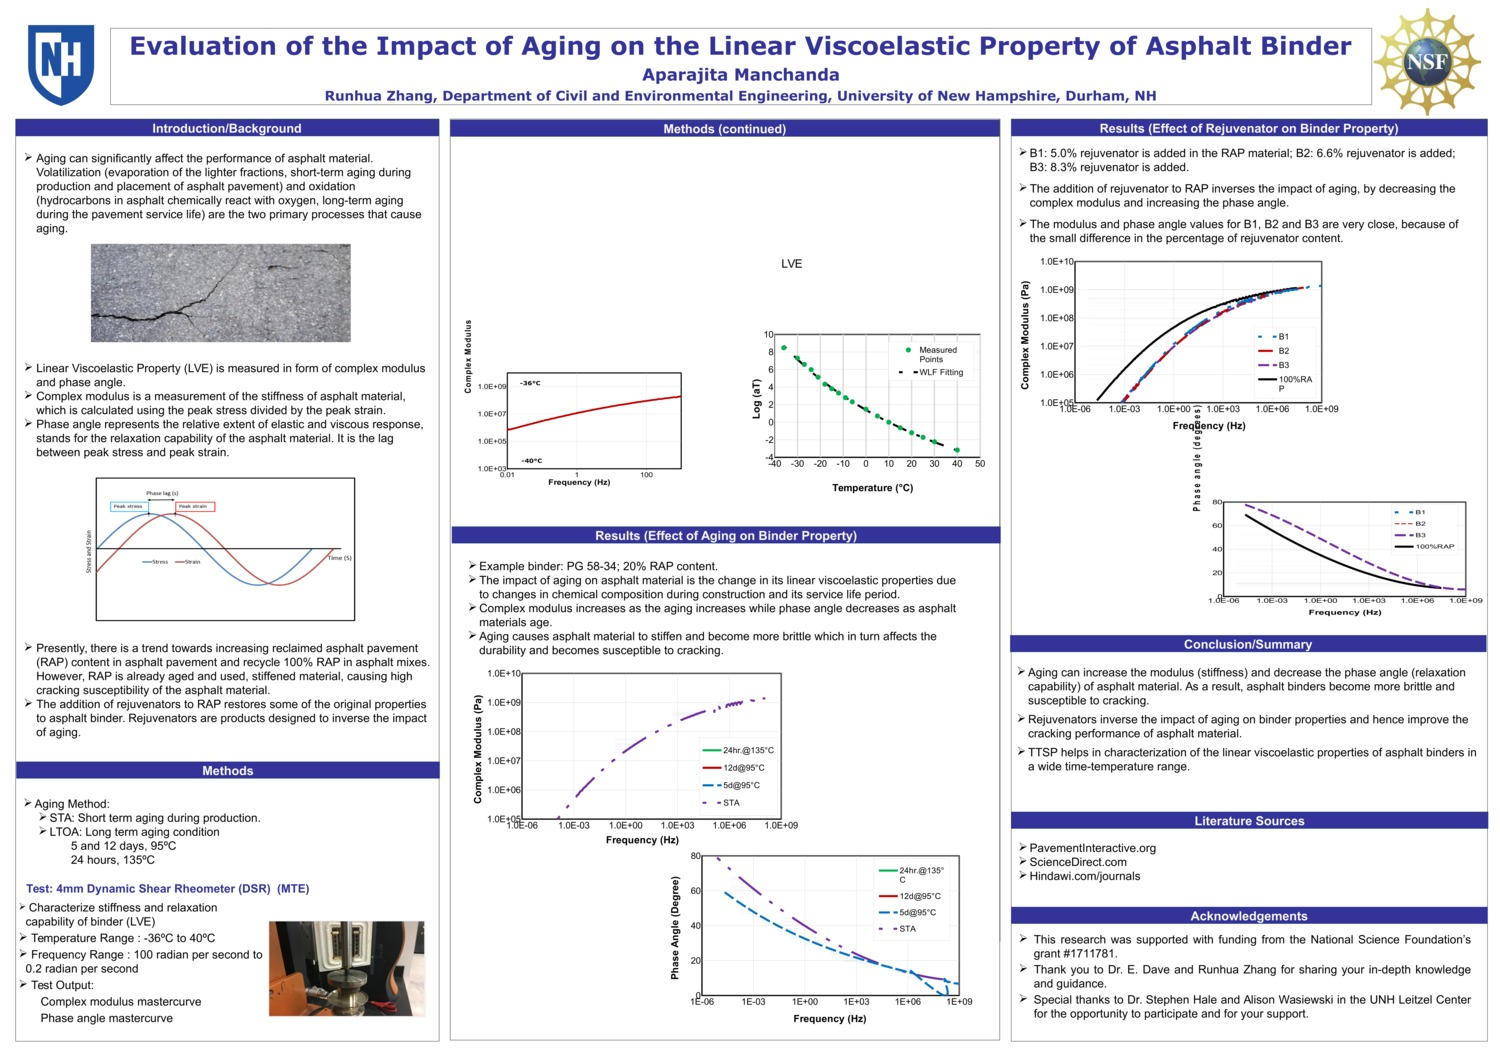 Evaluation Of The Impact Of Aging On The Linear Viscoelastic Property Of Asphalt Binder by am1632